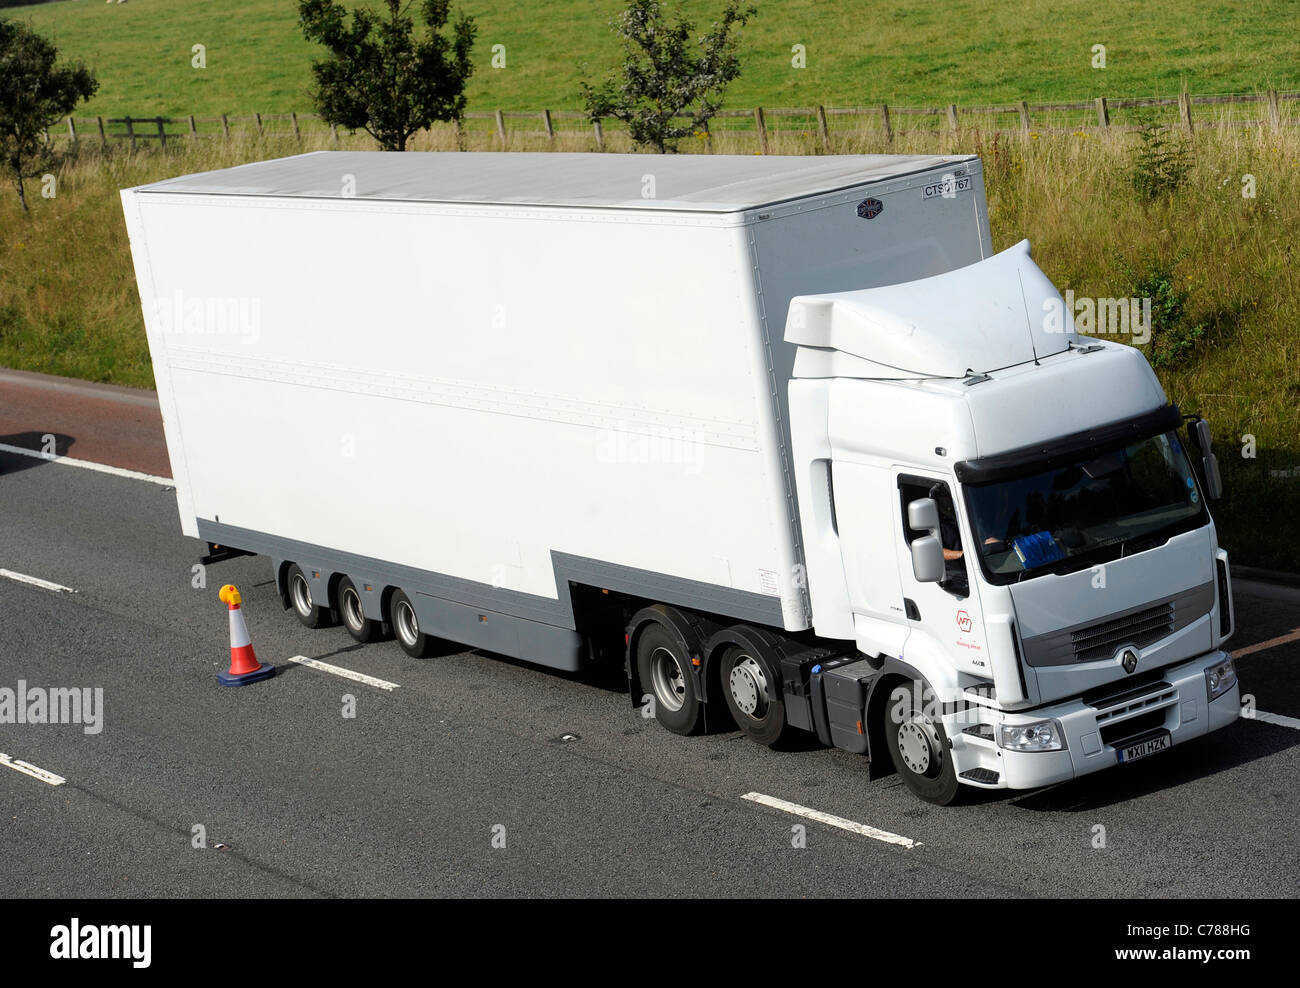 Renault Premium truck with high capacity double deck trailer - Stock Image